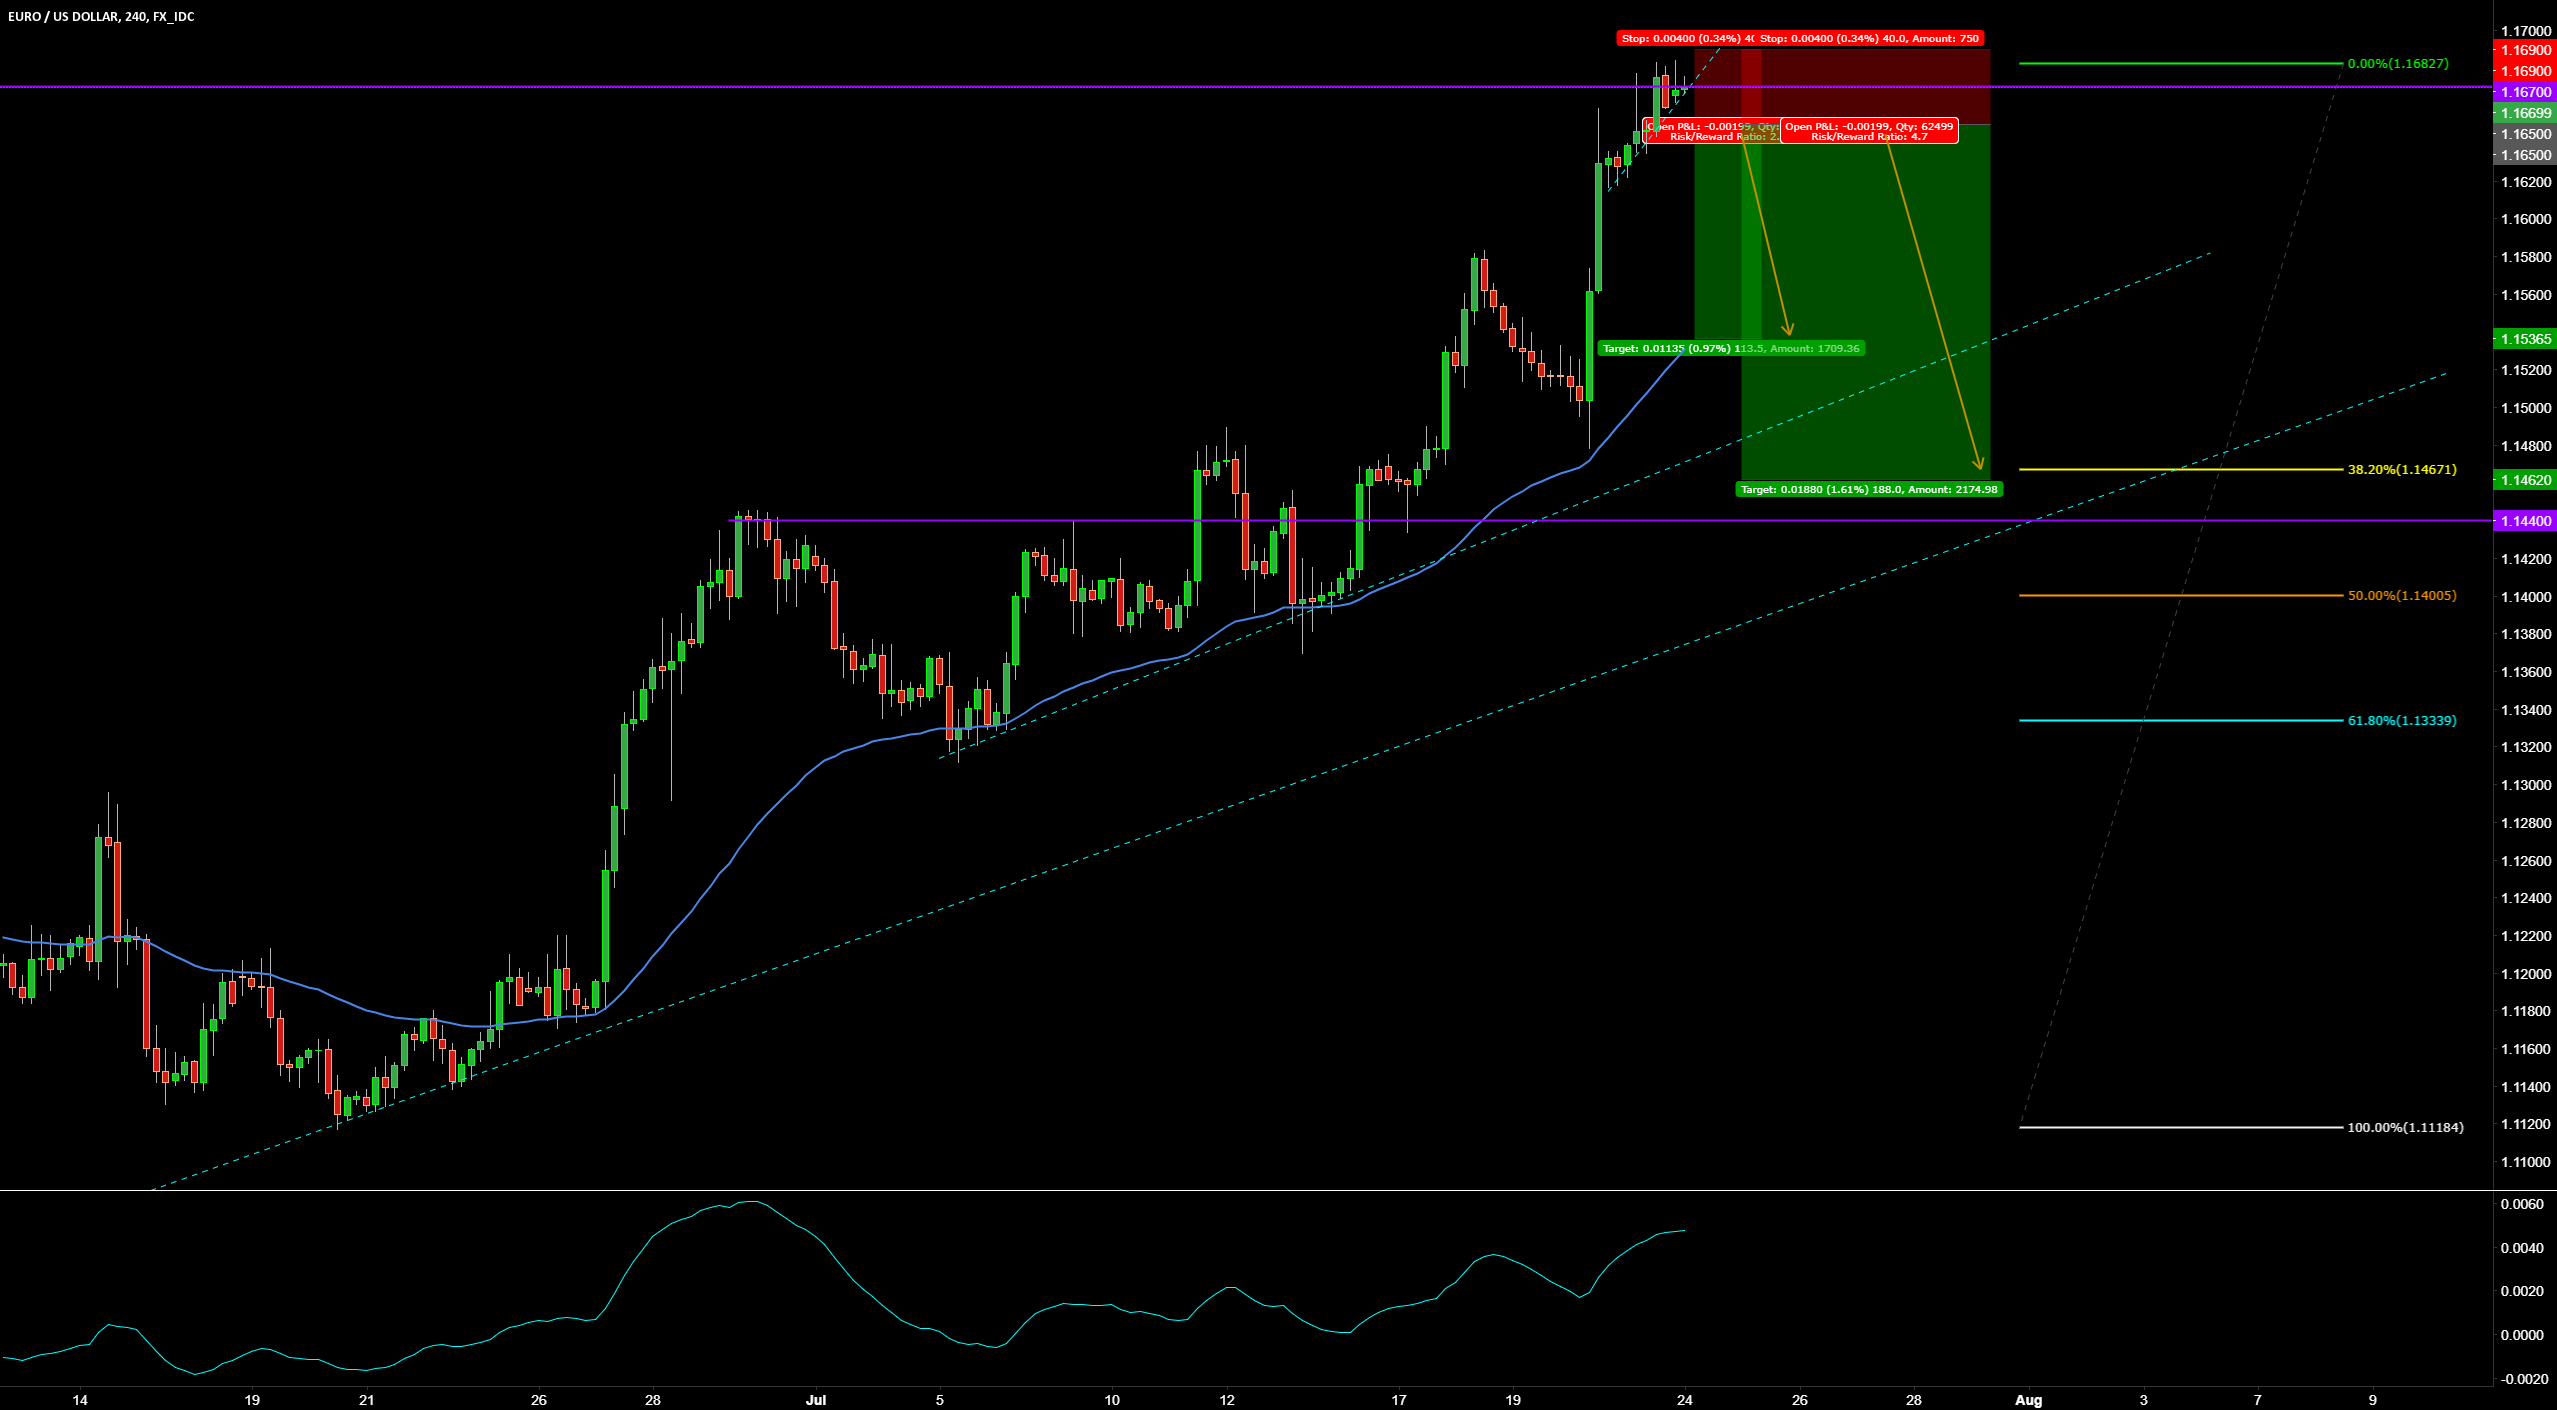 EURUSD SHORT TRADE SETUP, SELL THE BREAK OUT